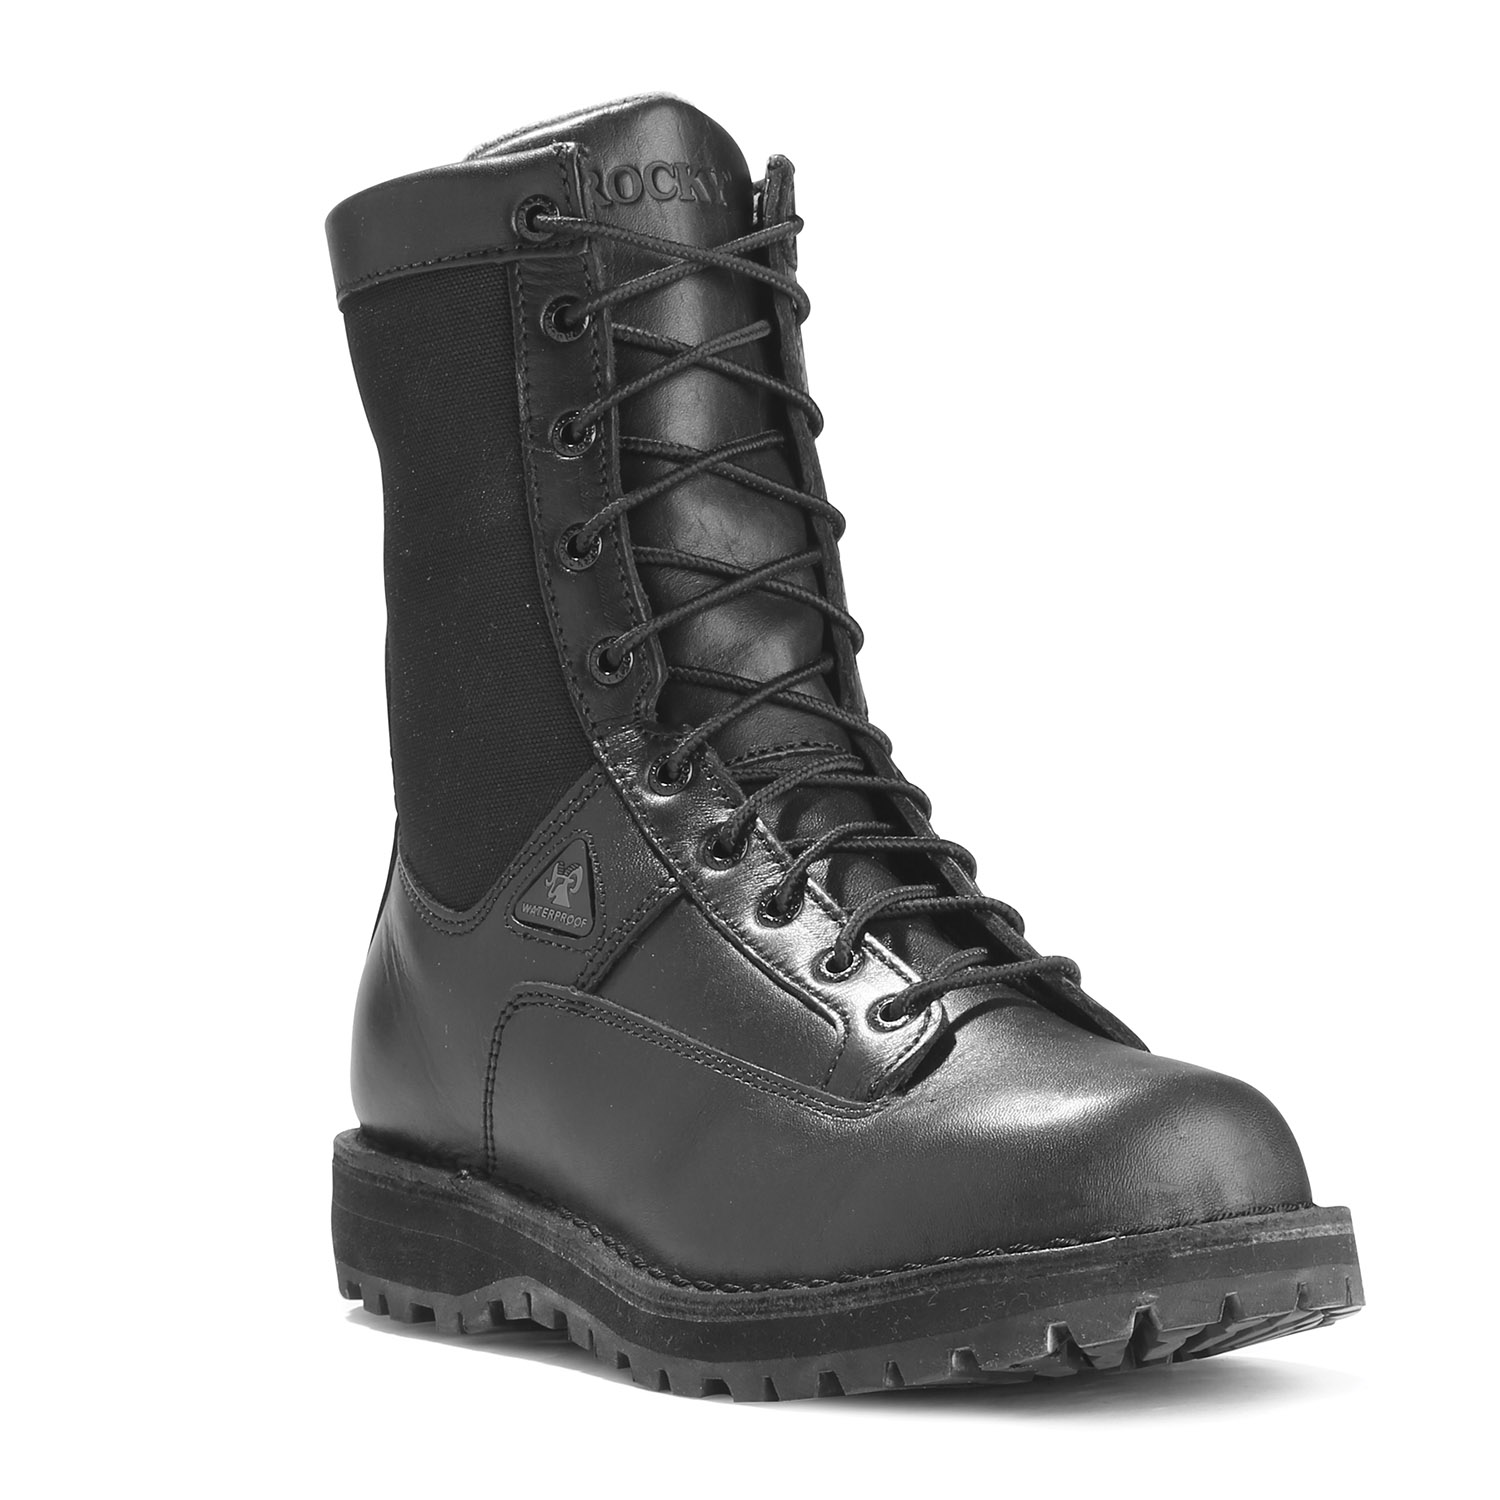 "Rocky 8"" Portland Waterproof Boot"